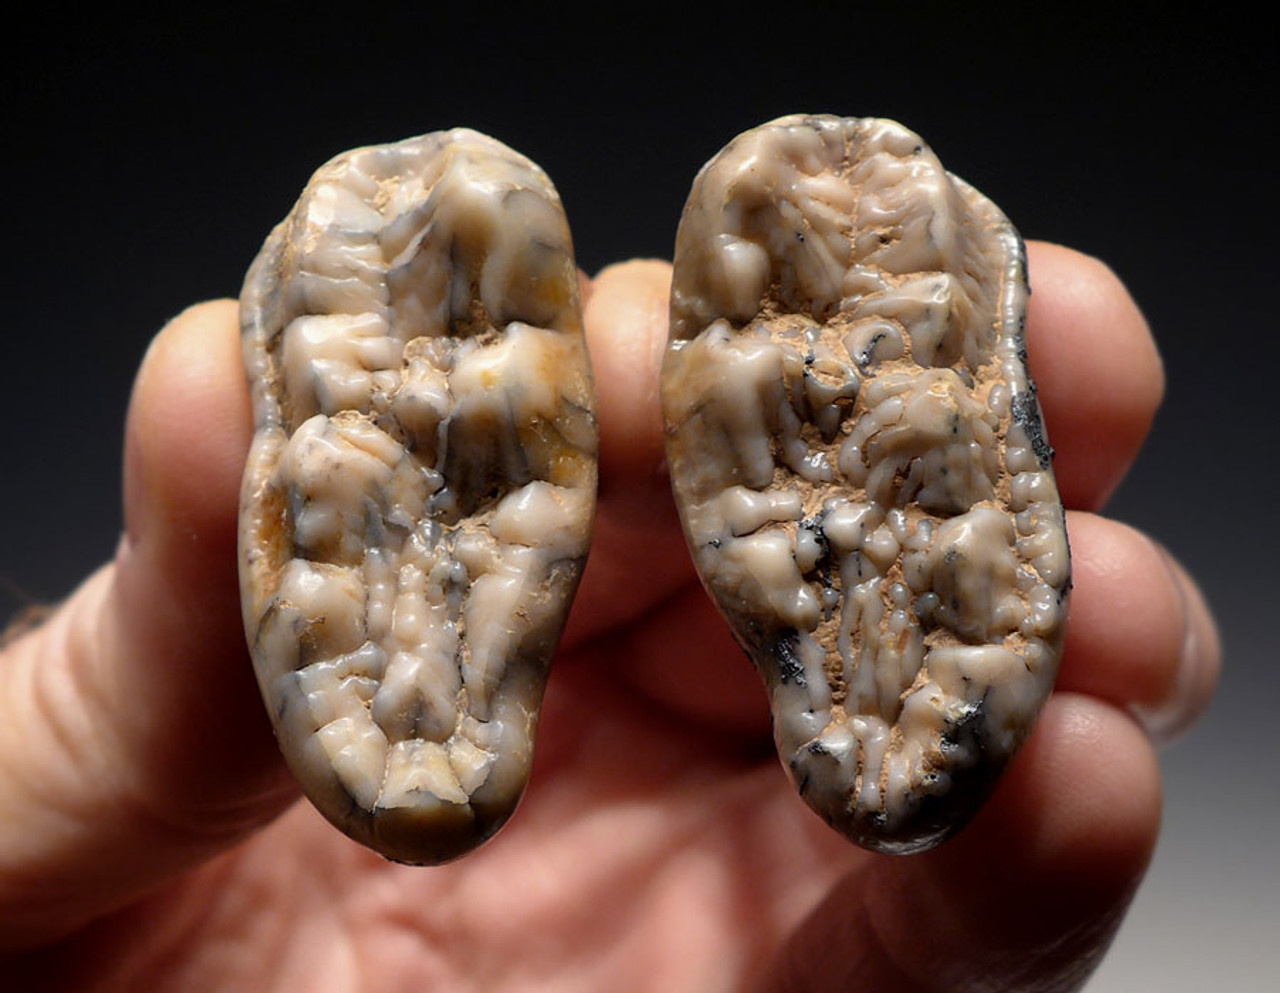 LM40-153 - PAIR OF SUPREME CAVE BEAR (URSUS SPELAEUS) PRIMARY MOLAR FOSSIL TEETH FROM THE FAMOUS DRAGONS CAVE IN AUSTRIA